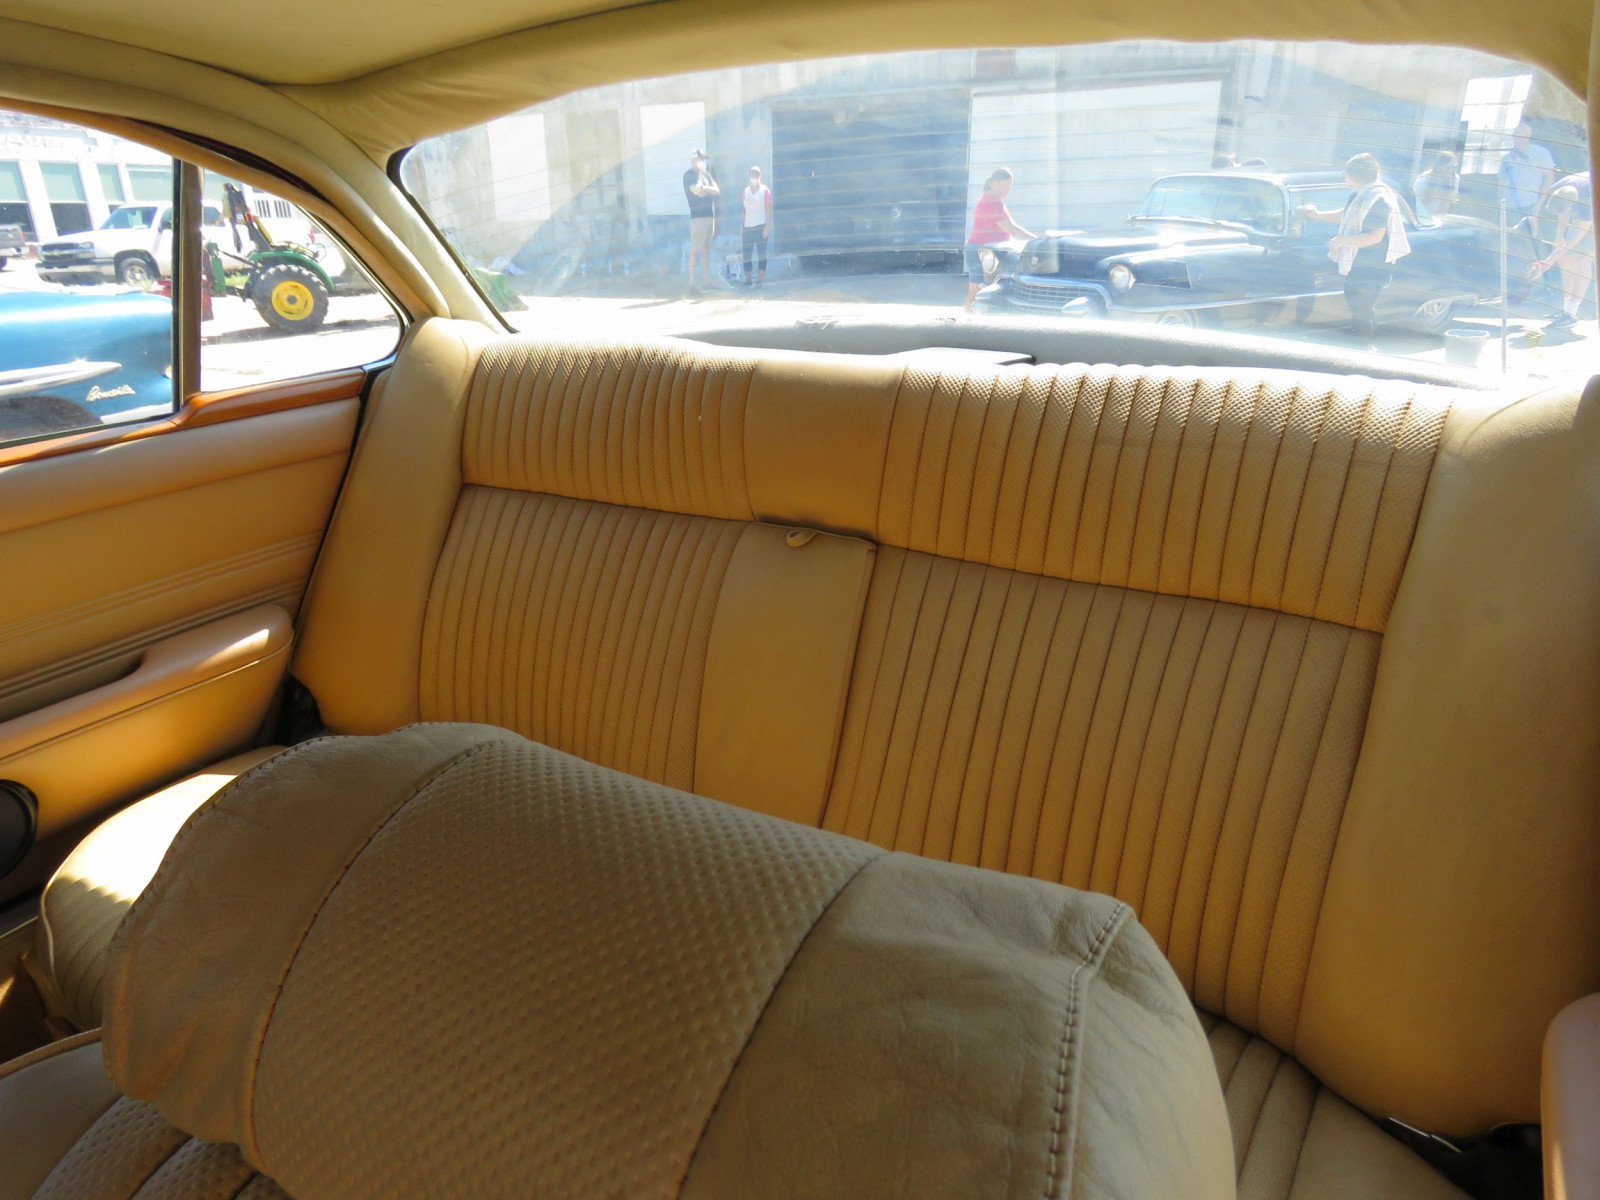 1973 JAGUAR XJ6 4DR SEDAN - Image 14